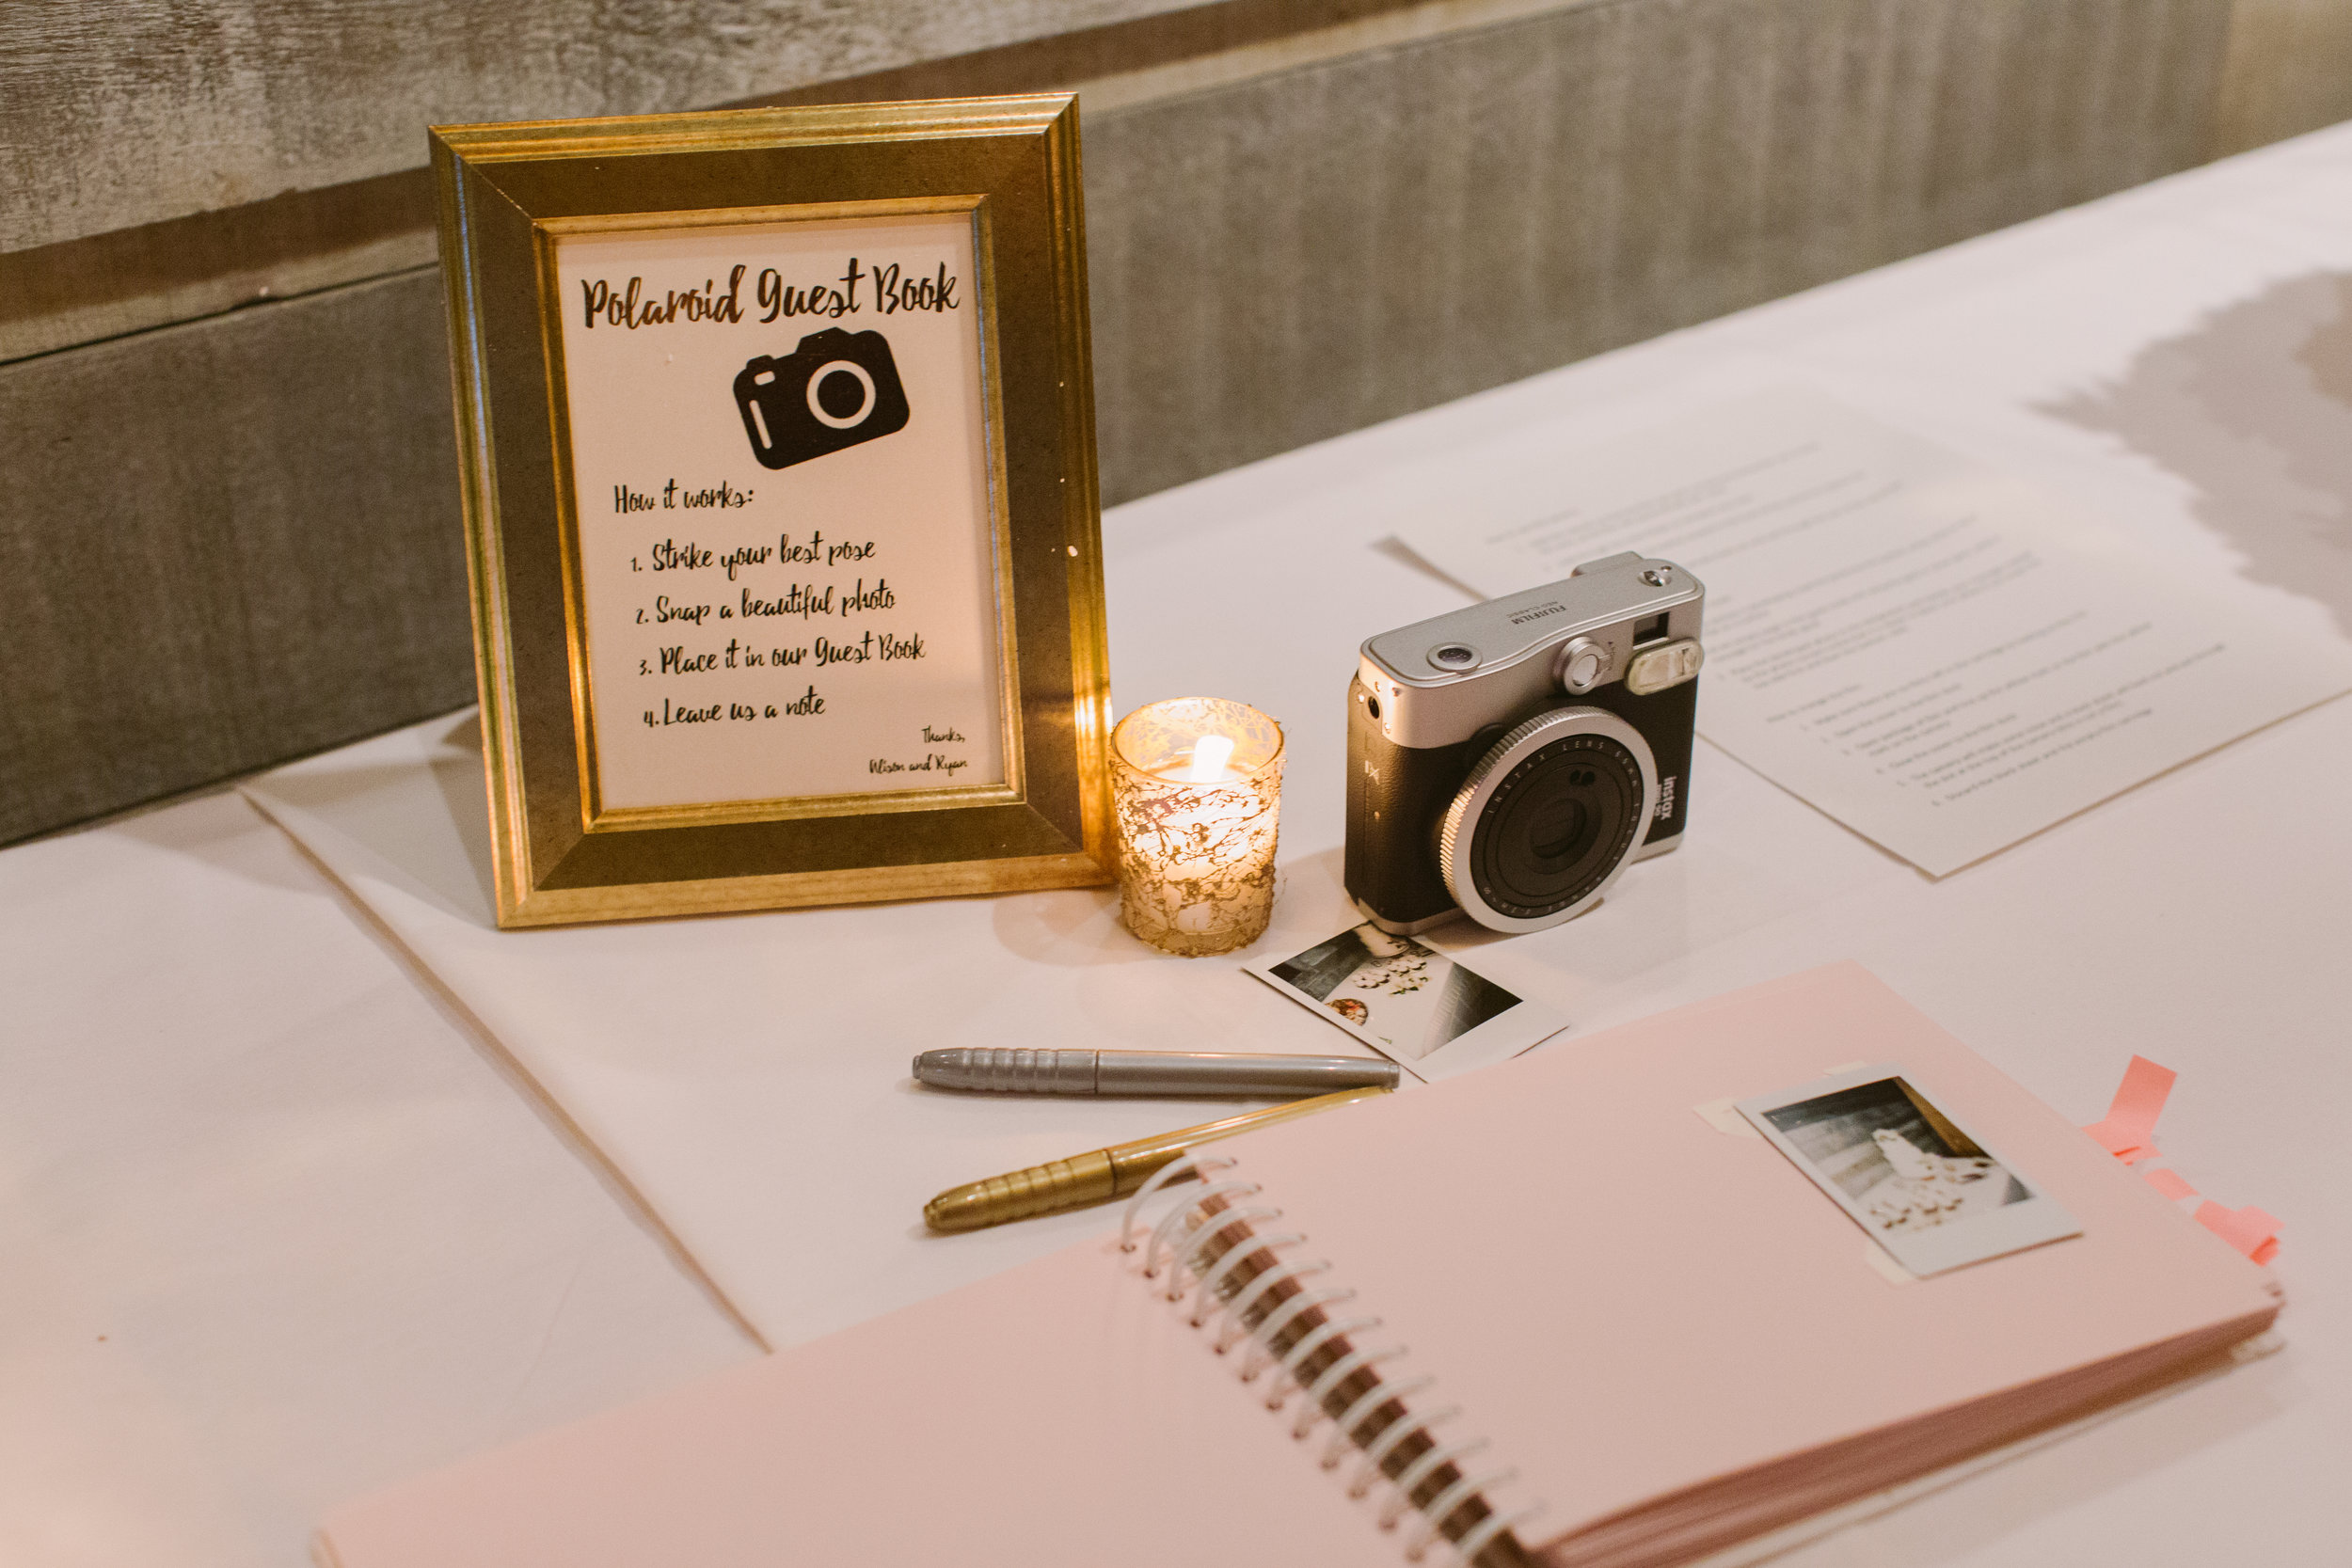 Polaroid Guestbook by Junebug Events